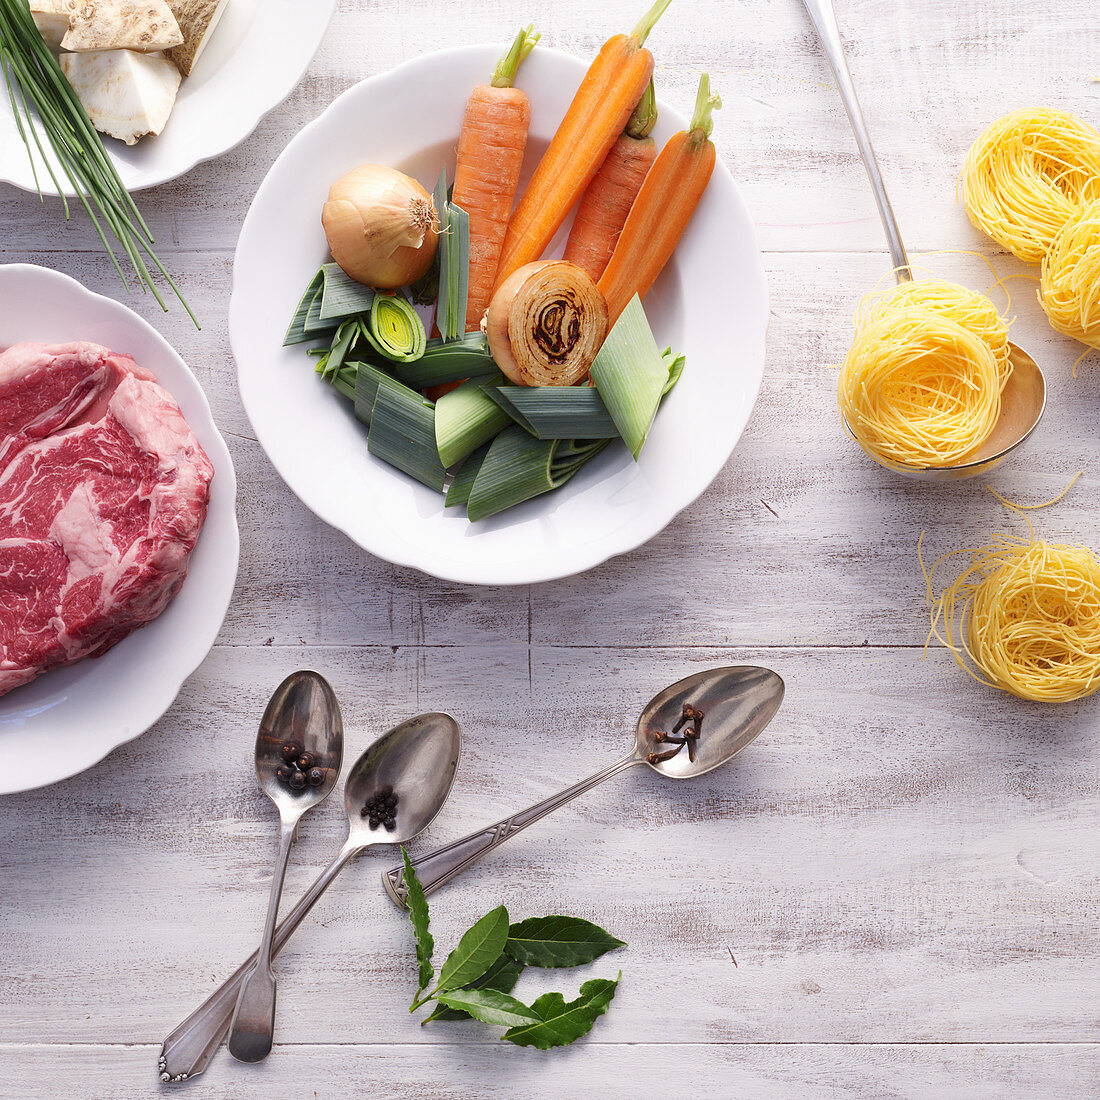 Ingredients for beef soup with noodles